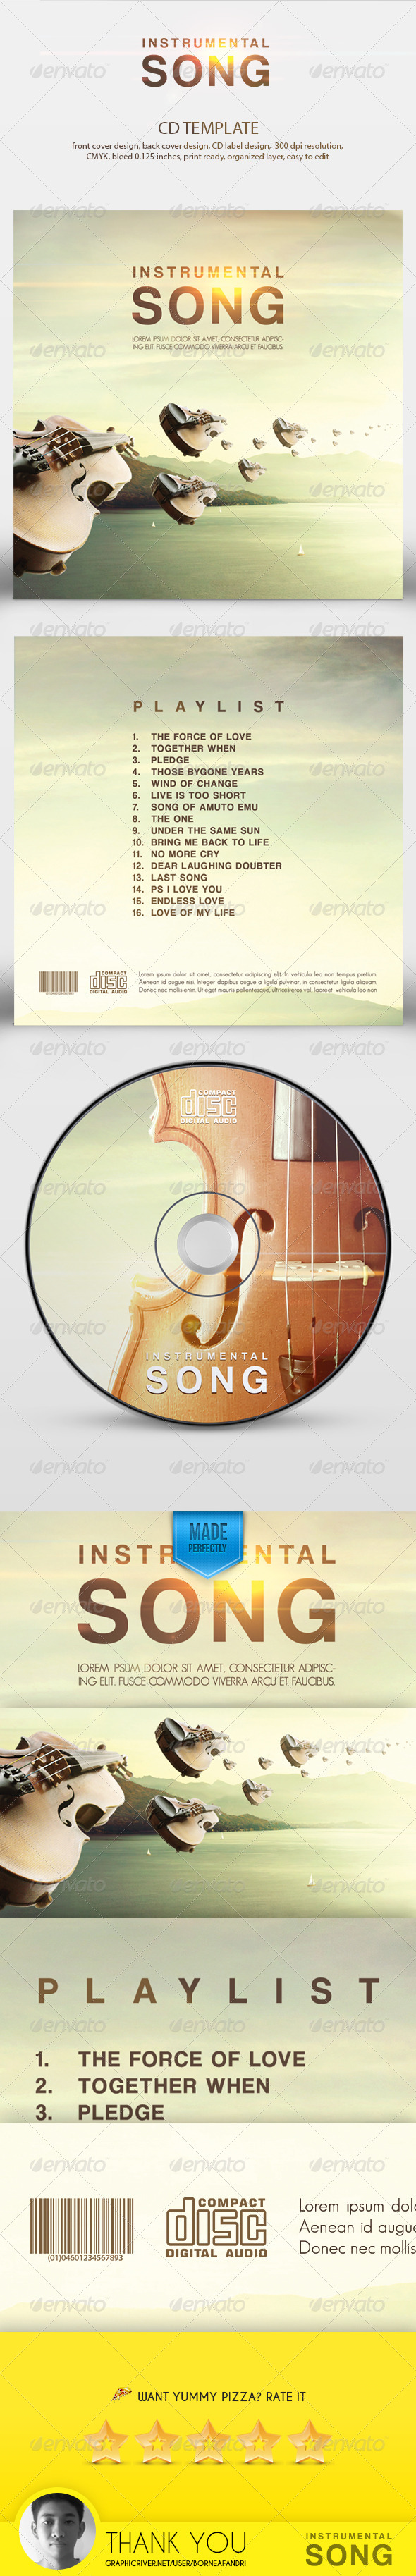 GraphicRiver Instrumental Song CD Template 8412008